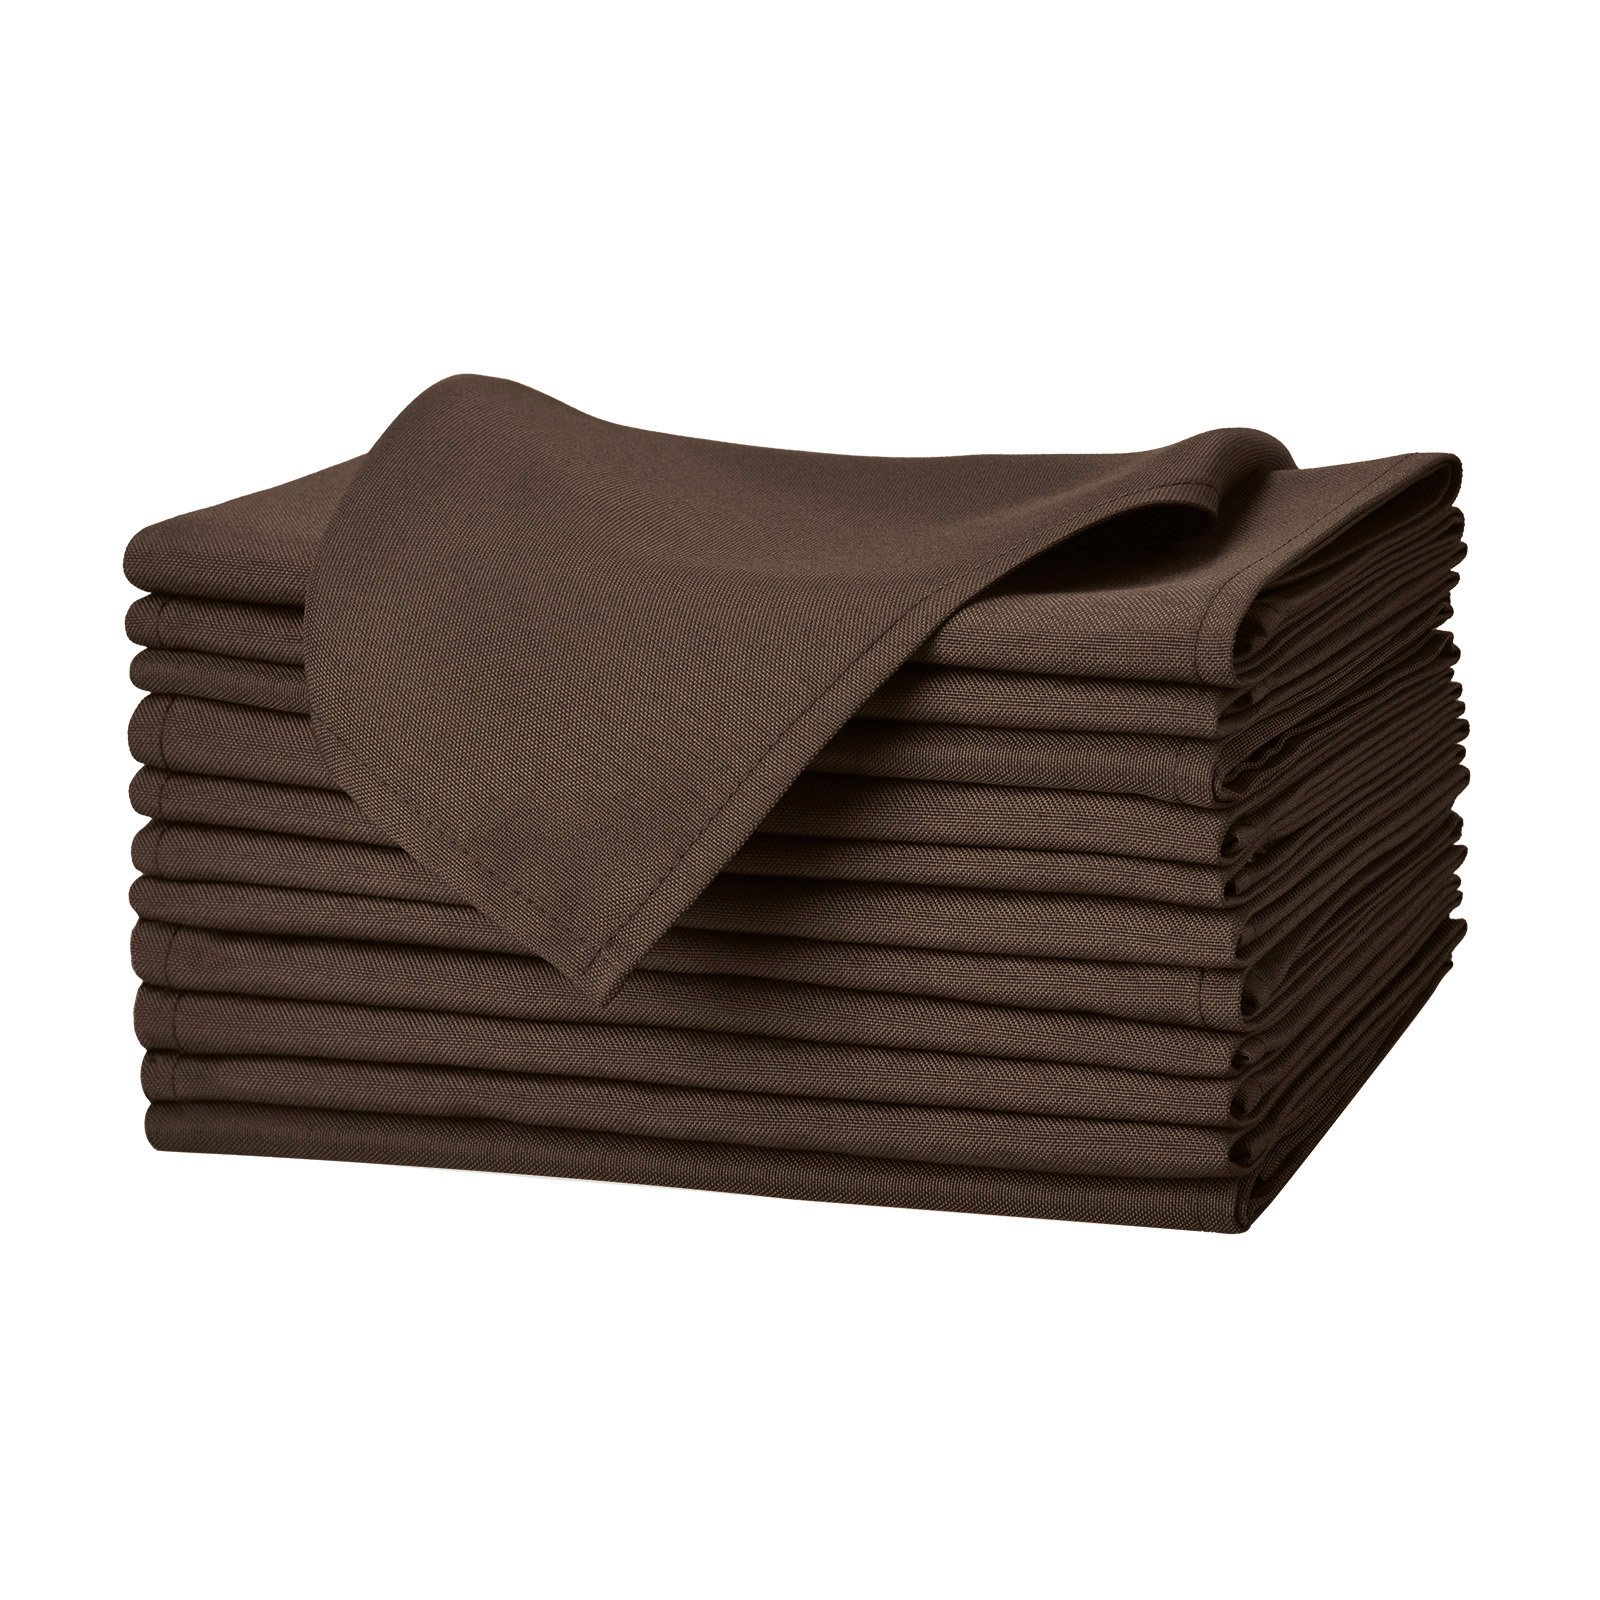 Remedios Set of 12 Oversized 17x17 Polyester Cloth Napkins Wedding Restaurant Banquet Home Dinner, Chocolate